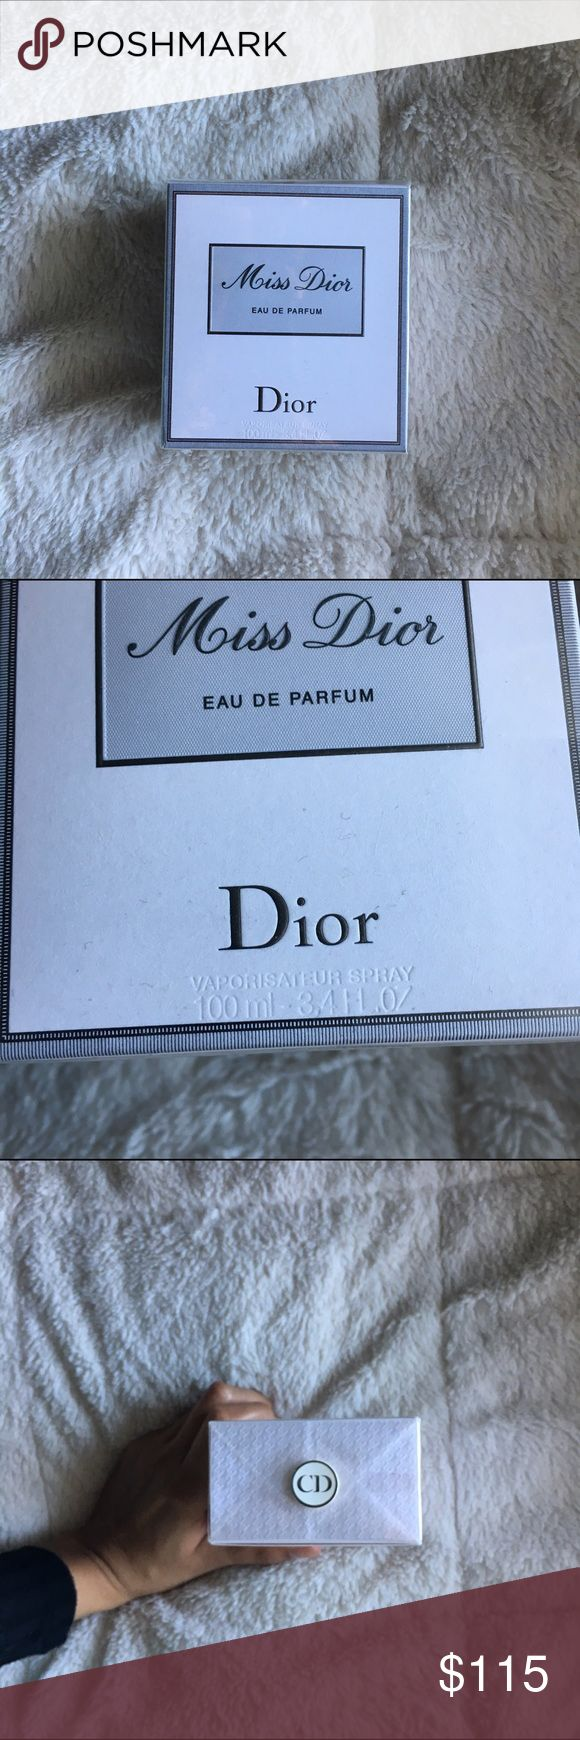 Miss Dior Eau De Parfum This is a Brand New in Box Miss Dior perfume. It is 3.4oz. It retails for $124, so please no offers. Price is firm!! ☺️ Dior Other